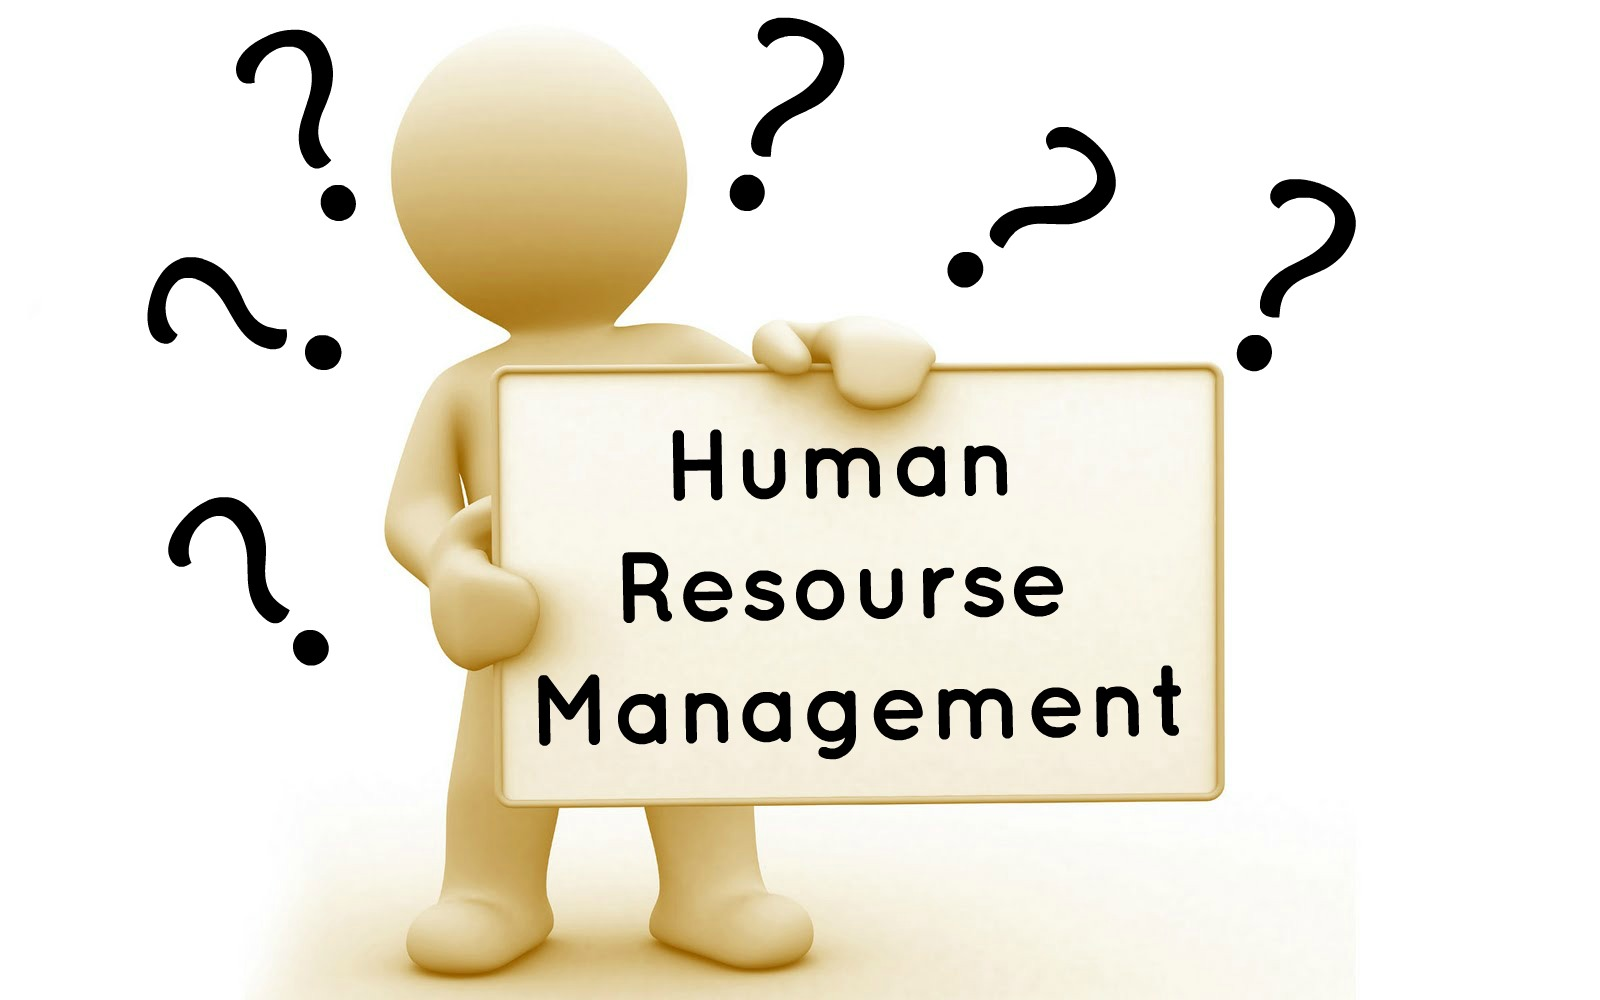 Human Resource Management Job Analysis